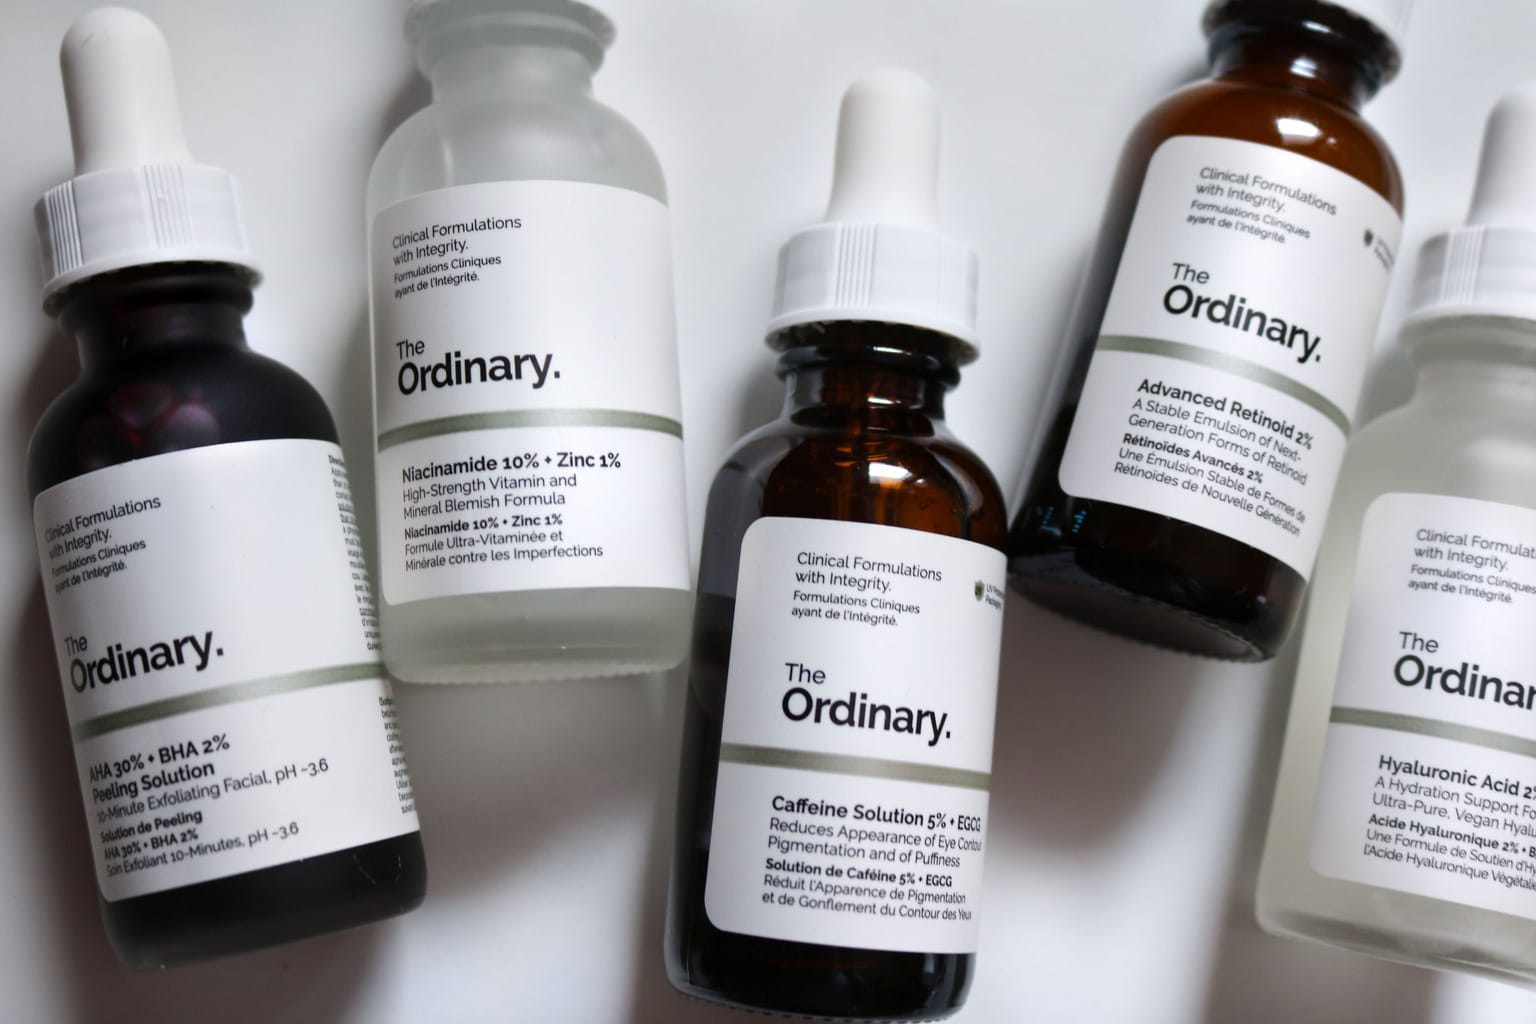 The Ordinary Skincare review